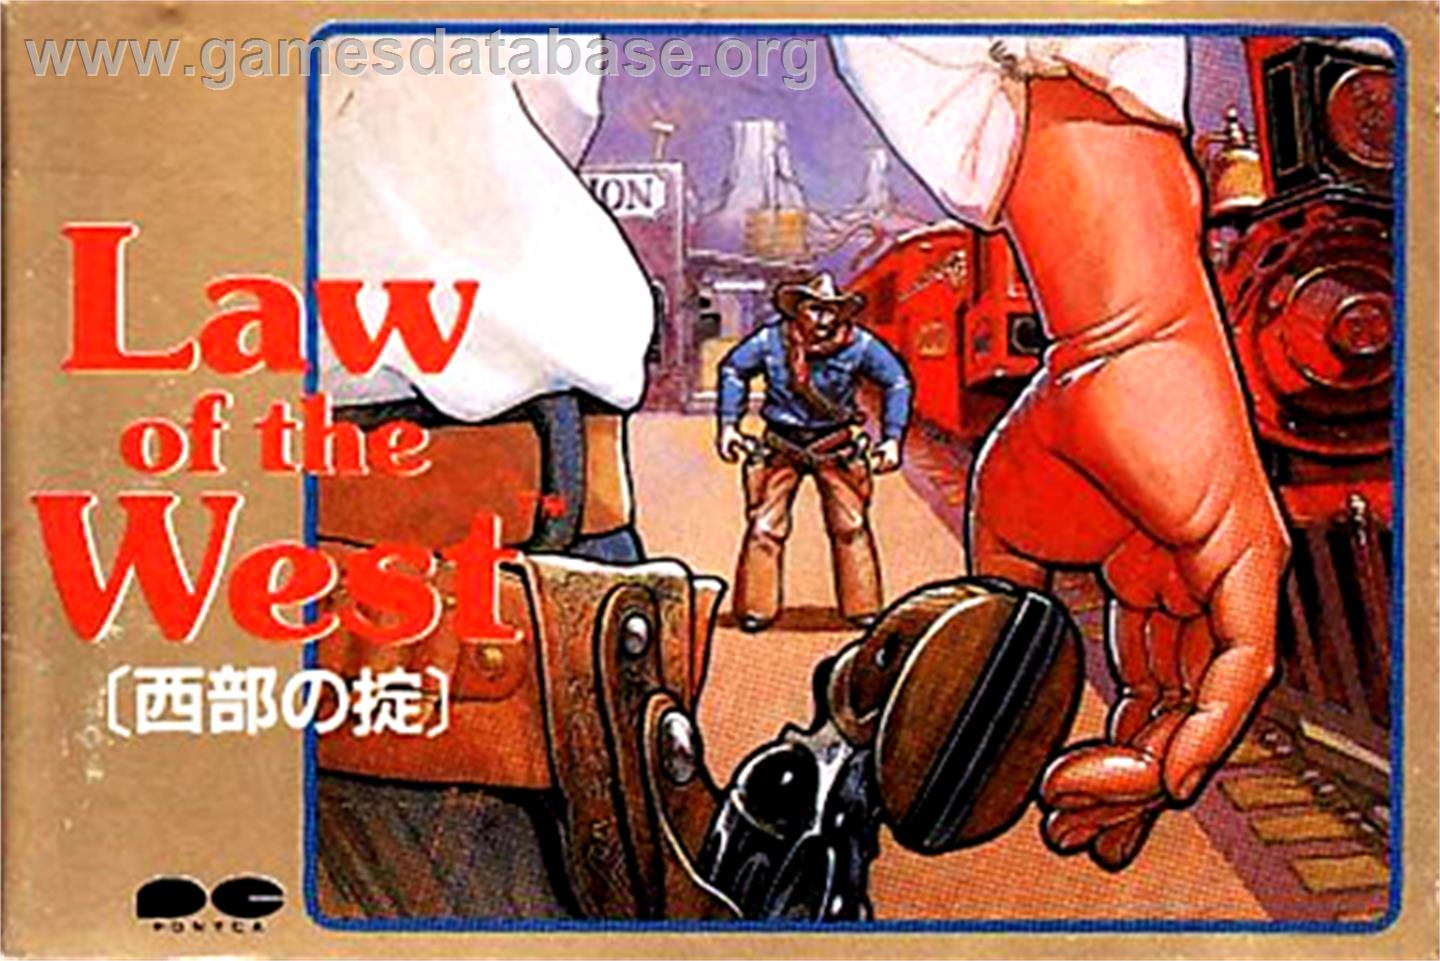 Law of the West - Nintendo NES - Artwork - Box